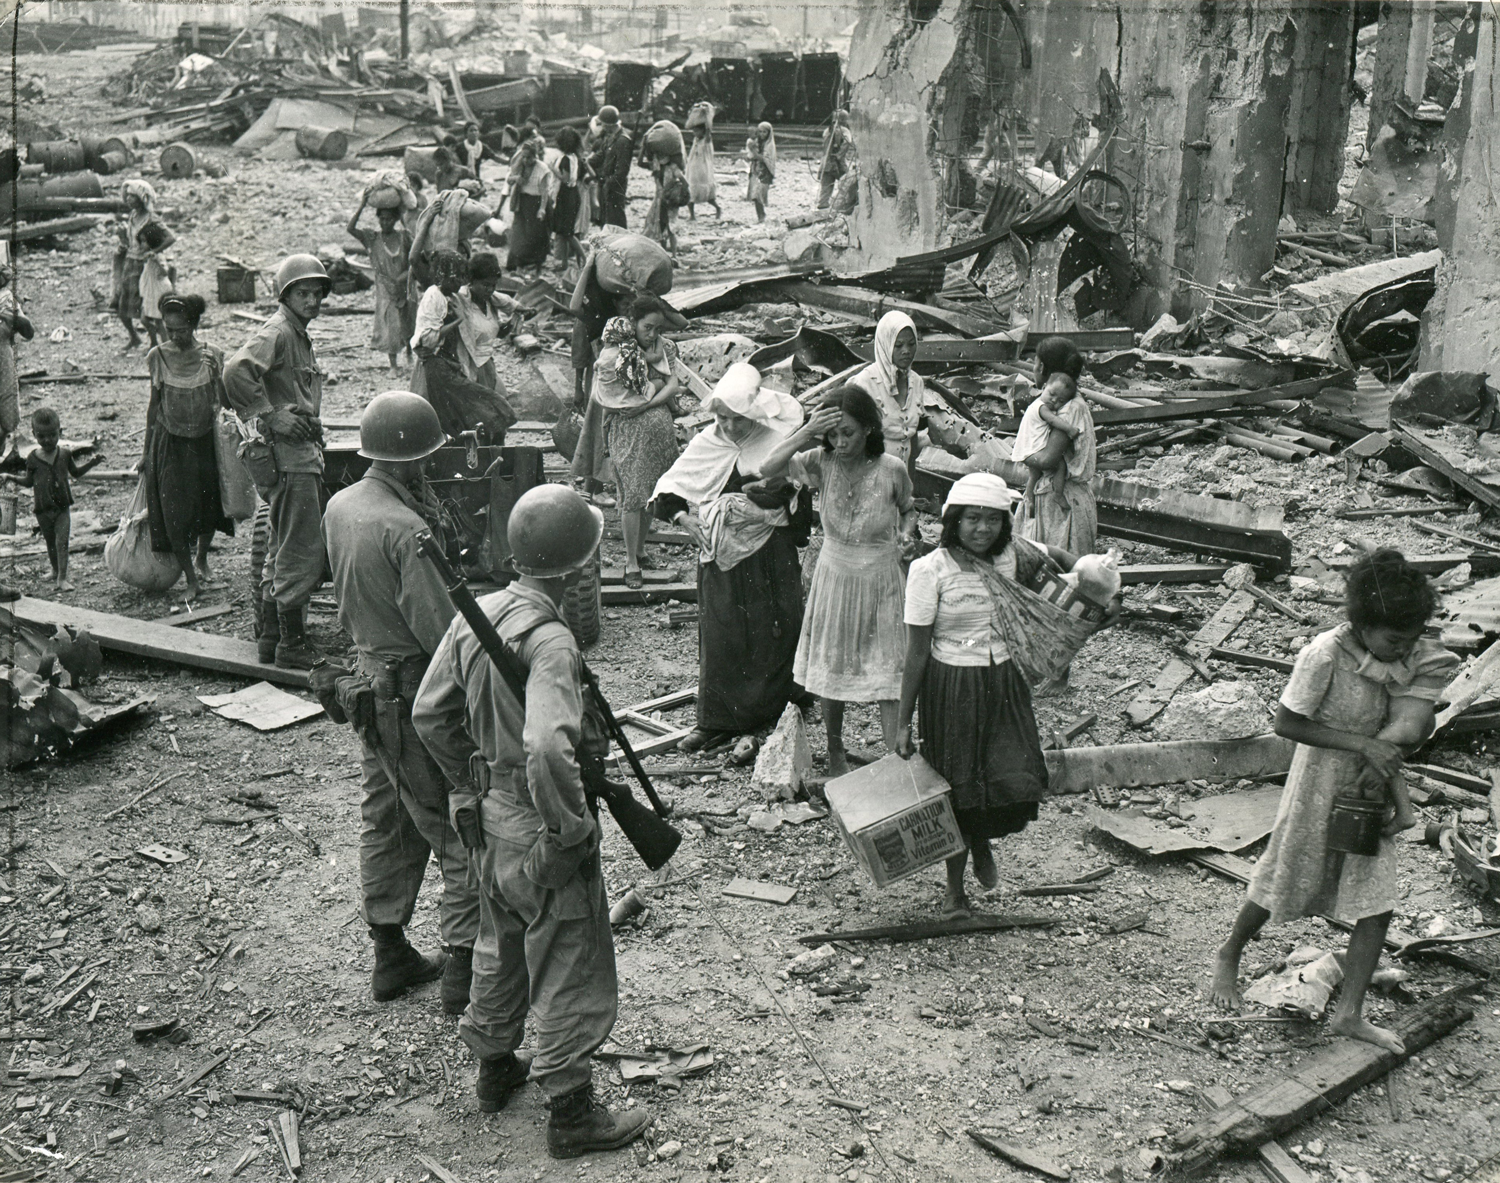 Filipino refugees, many barefoot, pick through the wreckage of north Manila, having just crossed the Pasig River following the fight for the Walled City. The nun carries a motherless infant born just three days earlier. (National Archives)